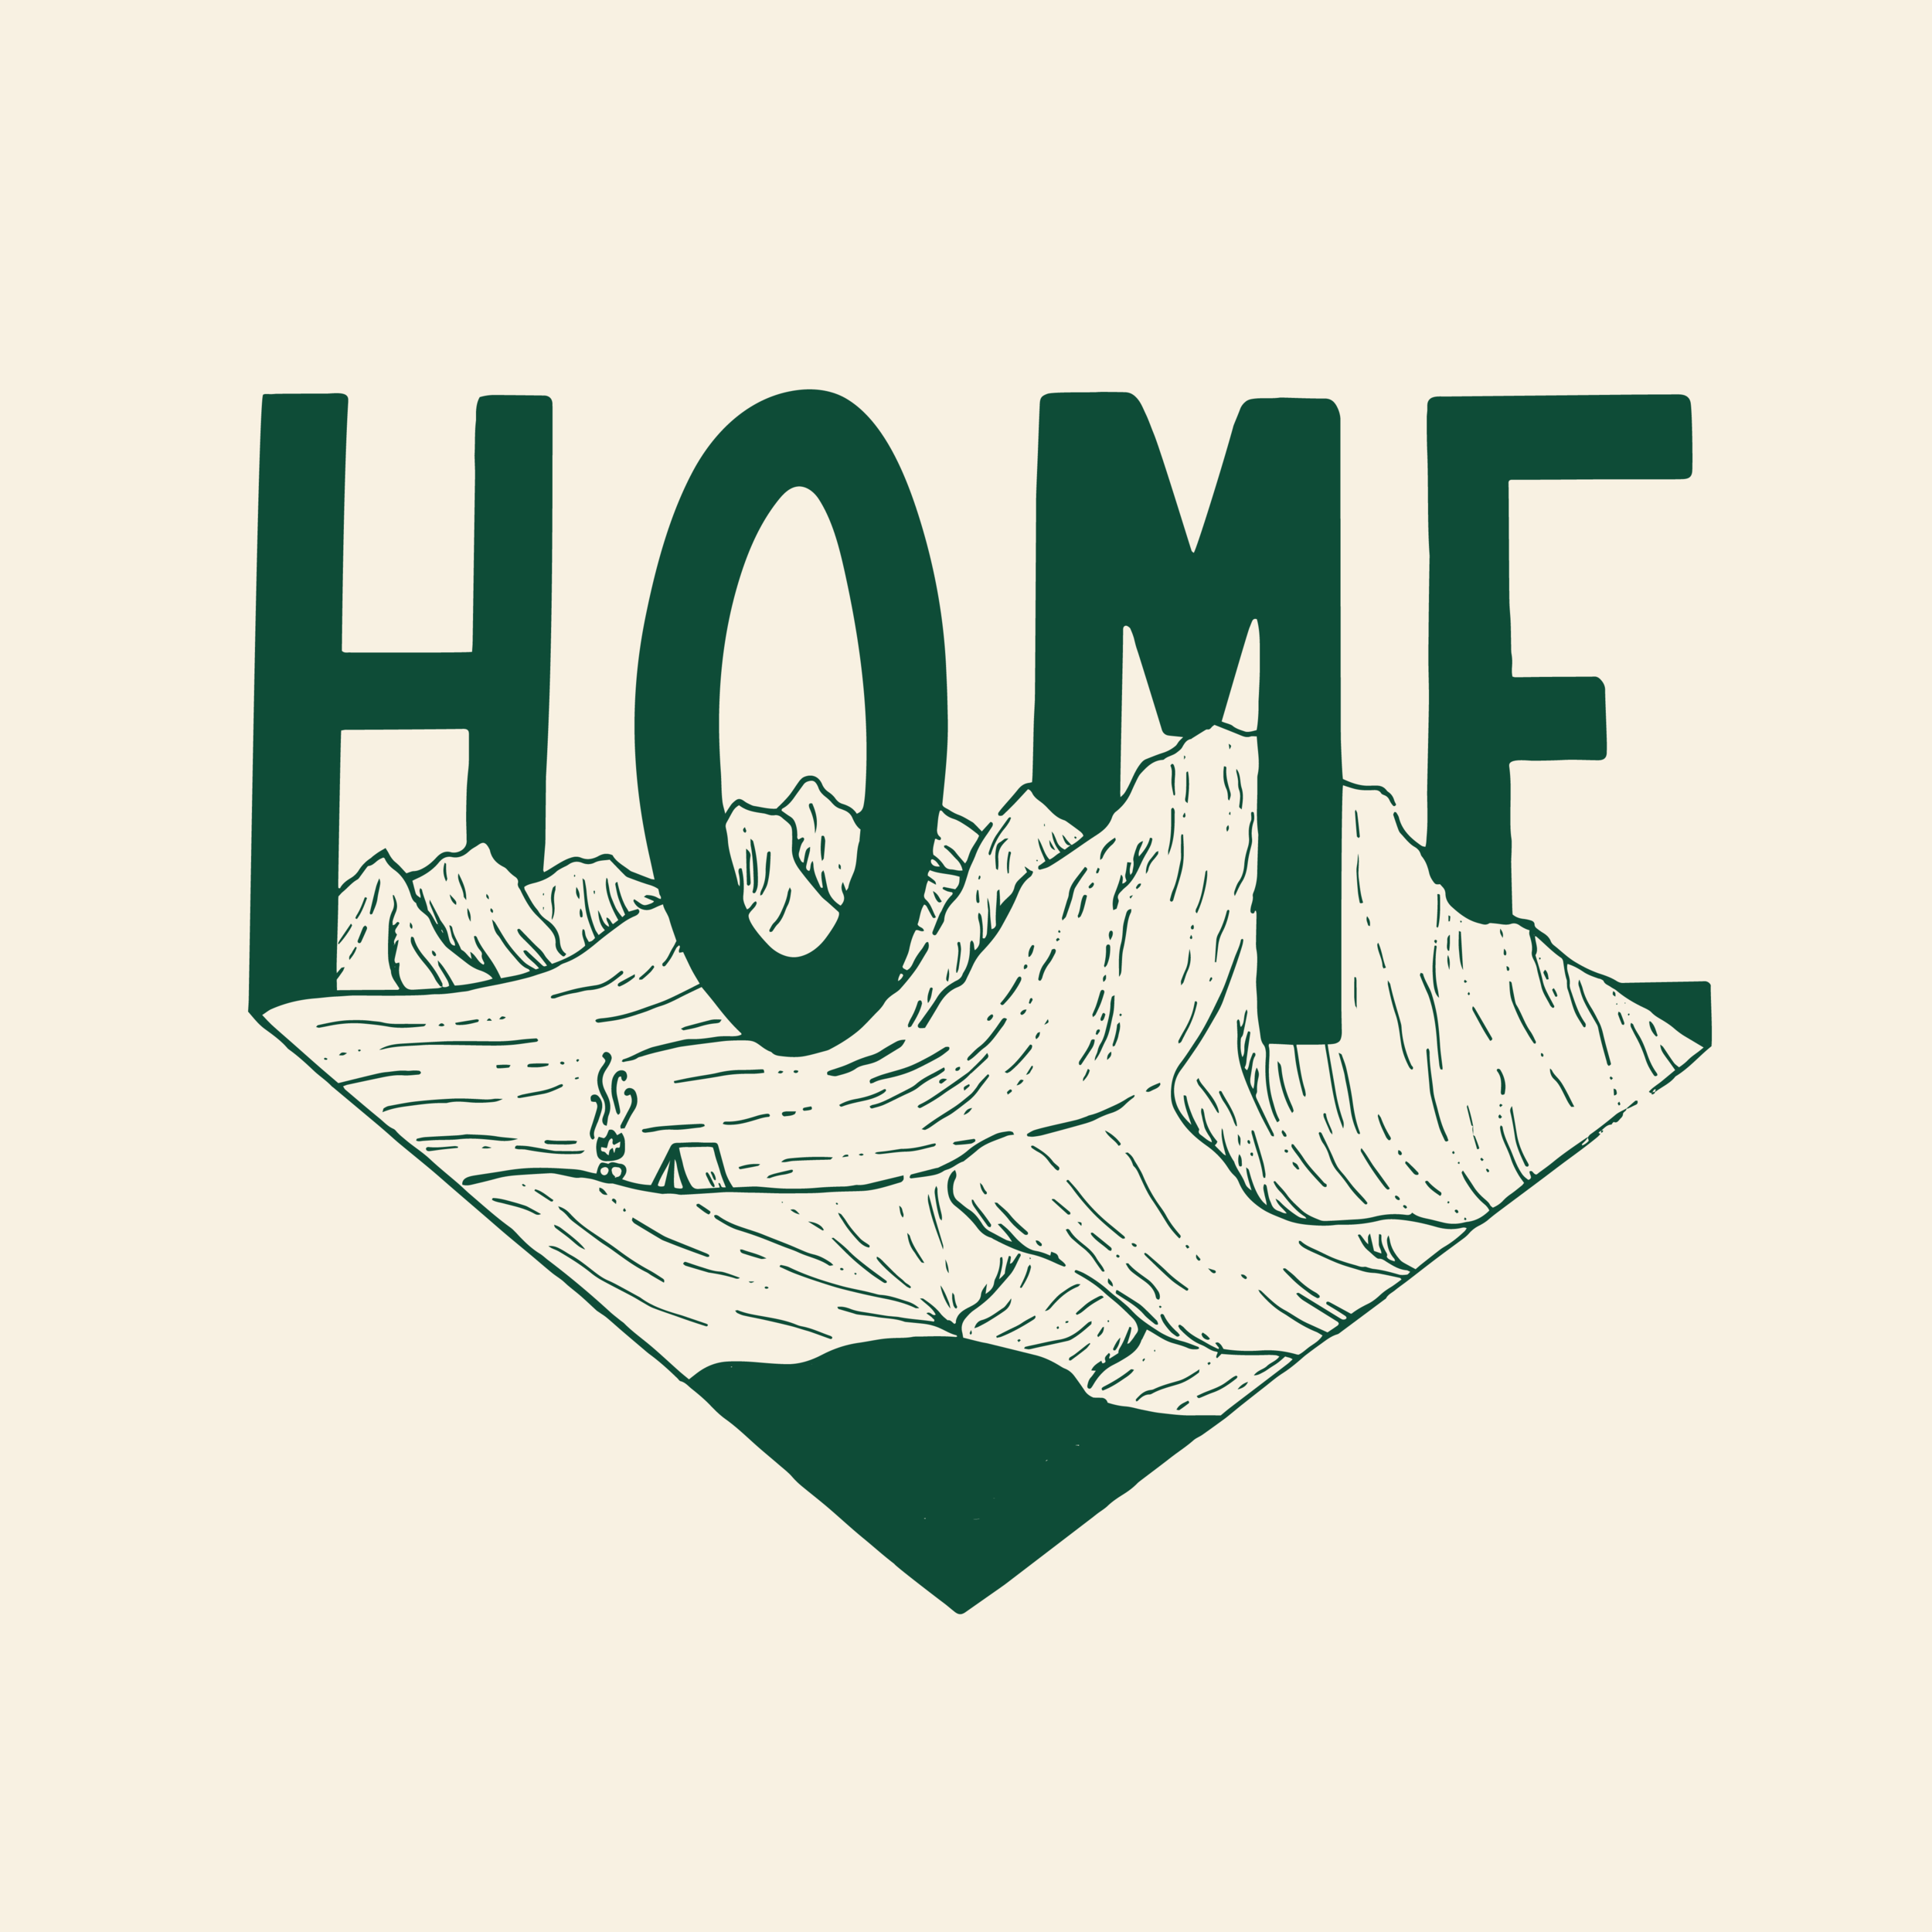 sasquatch and home illustration-01.png